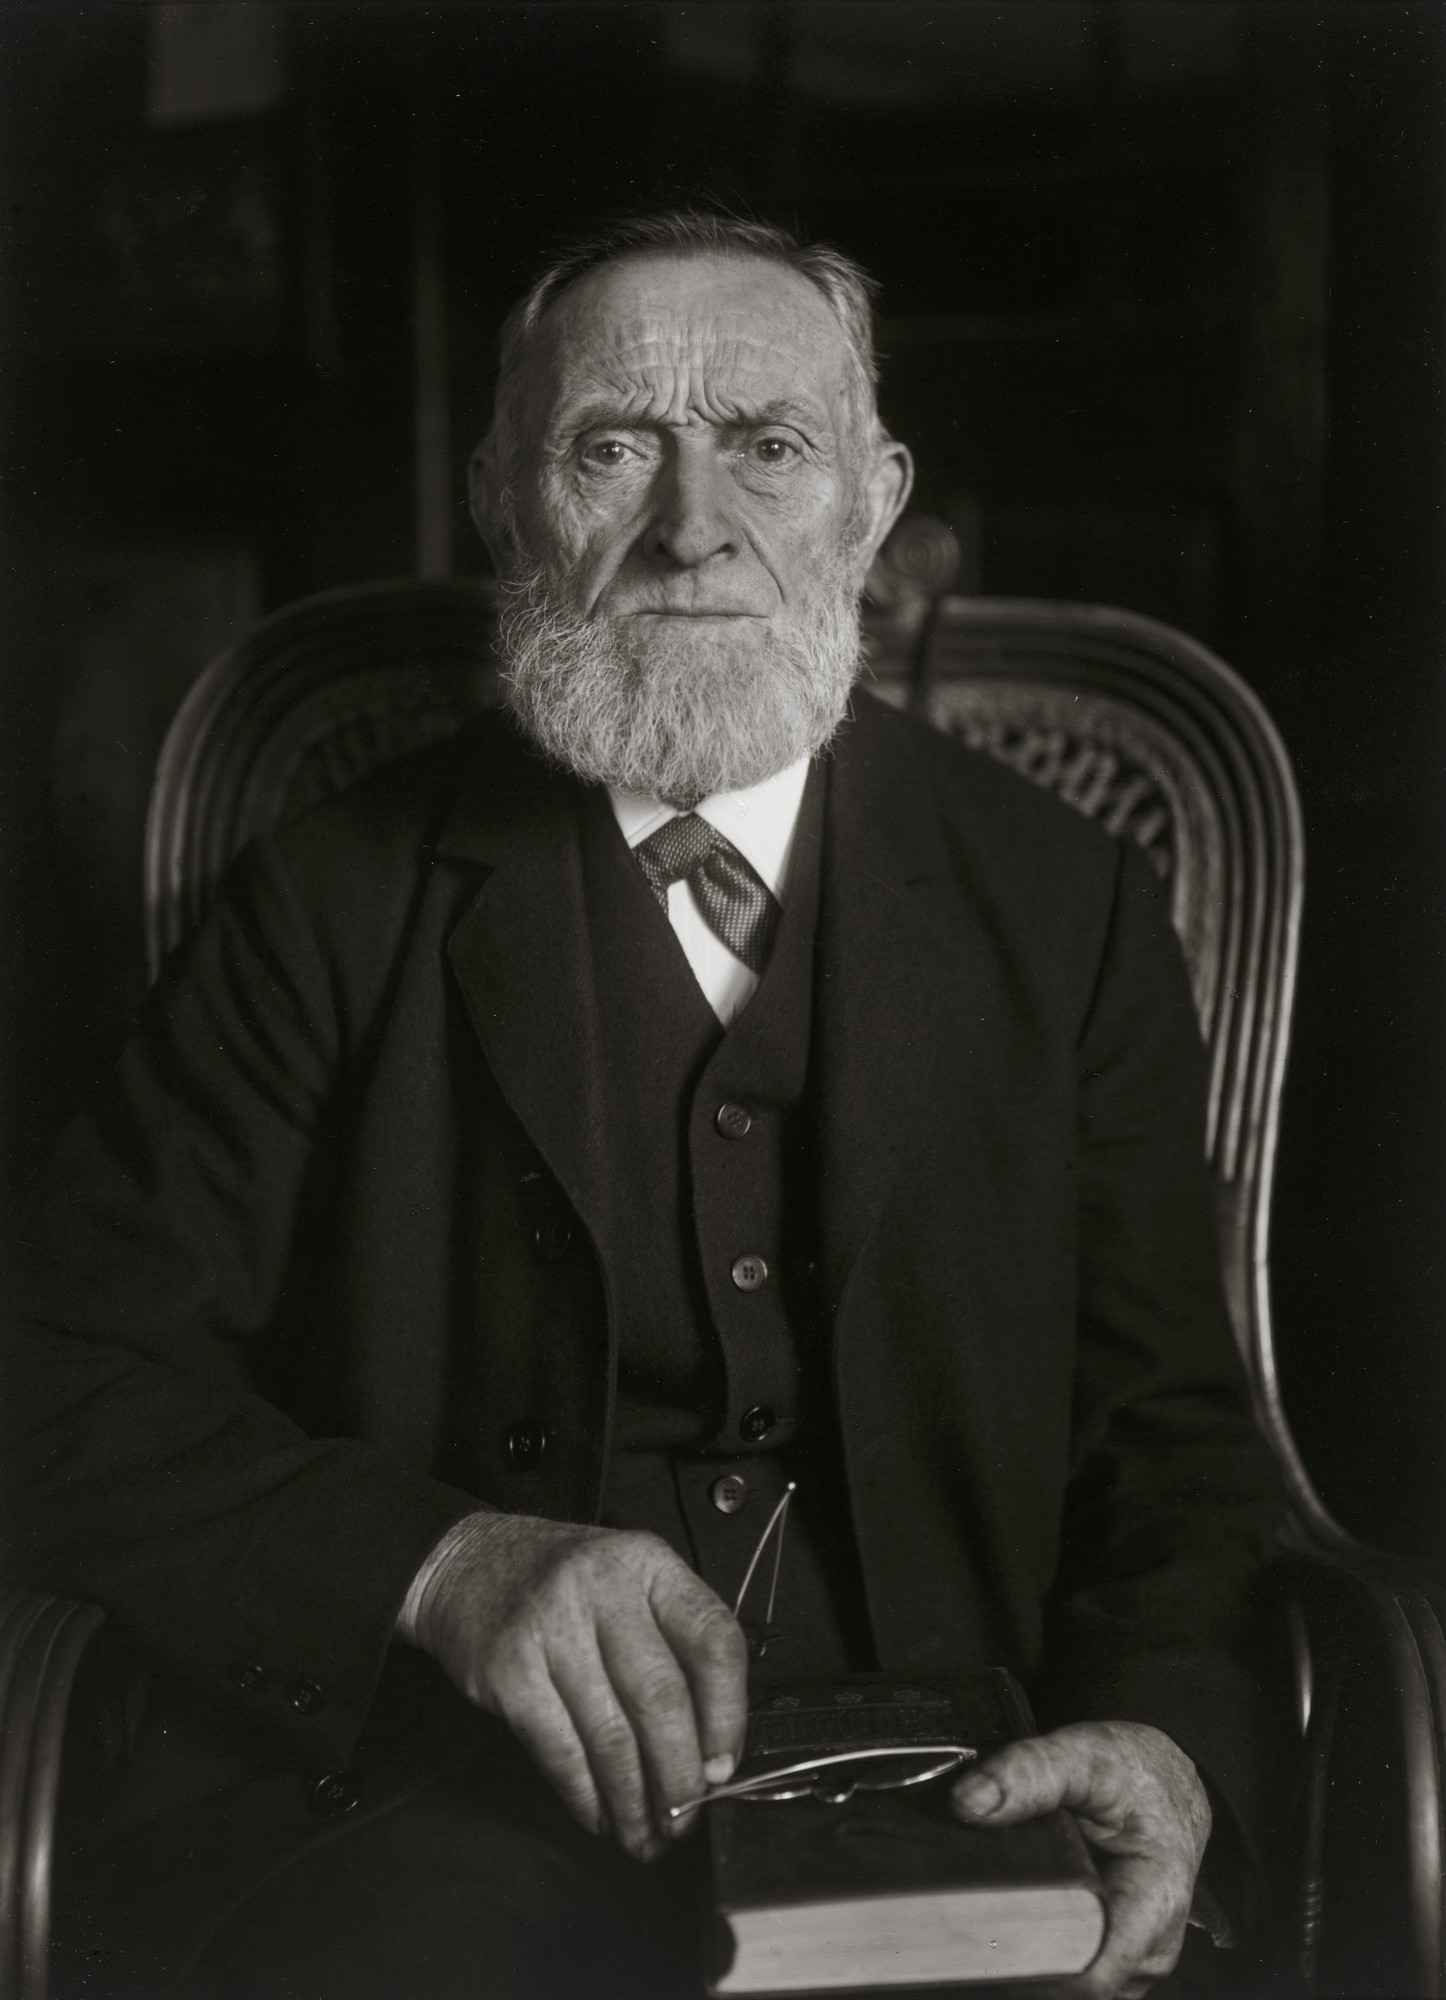 August Sander. The Fighter or Revolutionary. 1925